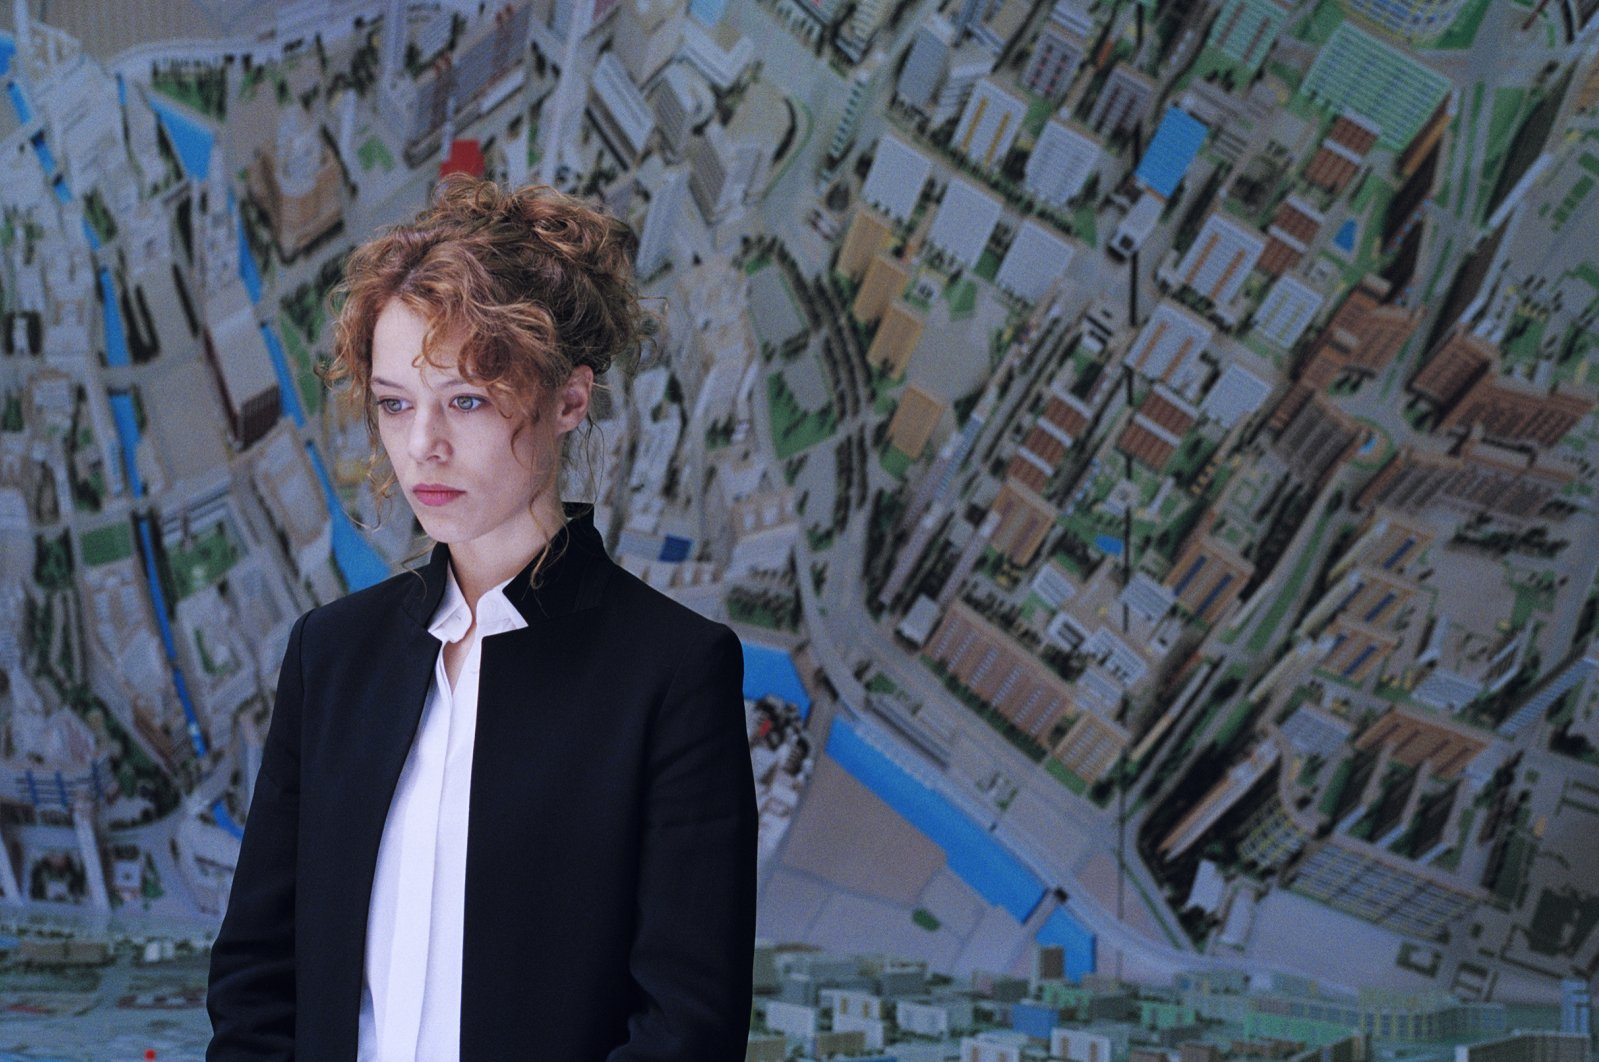 Undine is an art historian in a city museum lecturing on Berlin's urban development in Christian Petzold's movie. (Courtesy of Istanbul Modern)